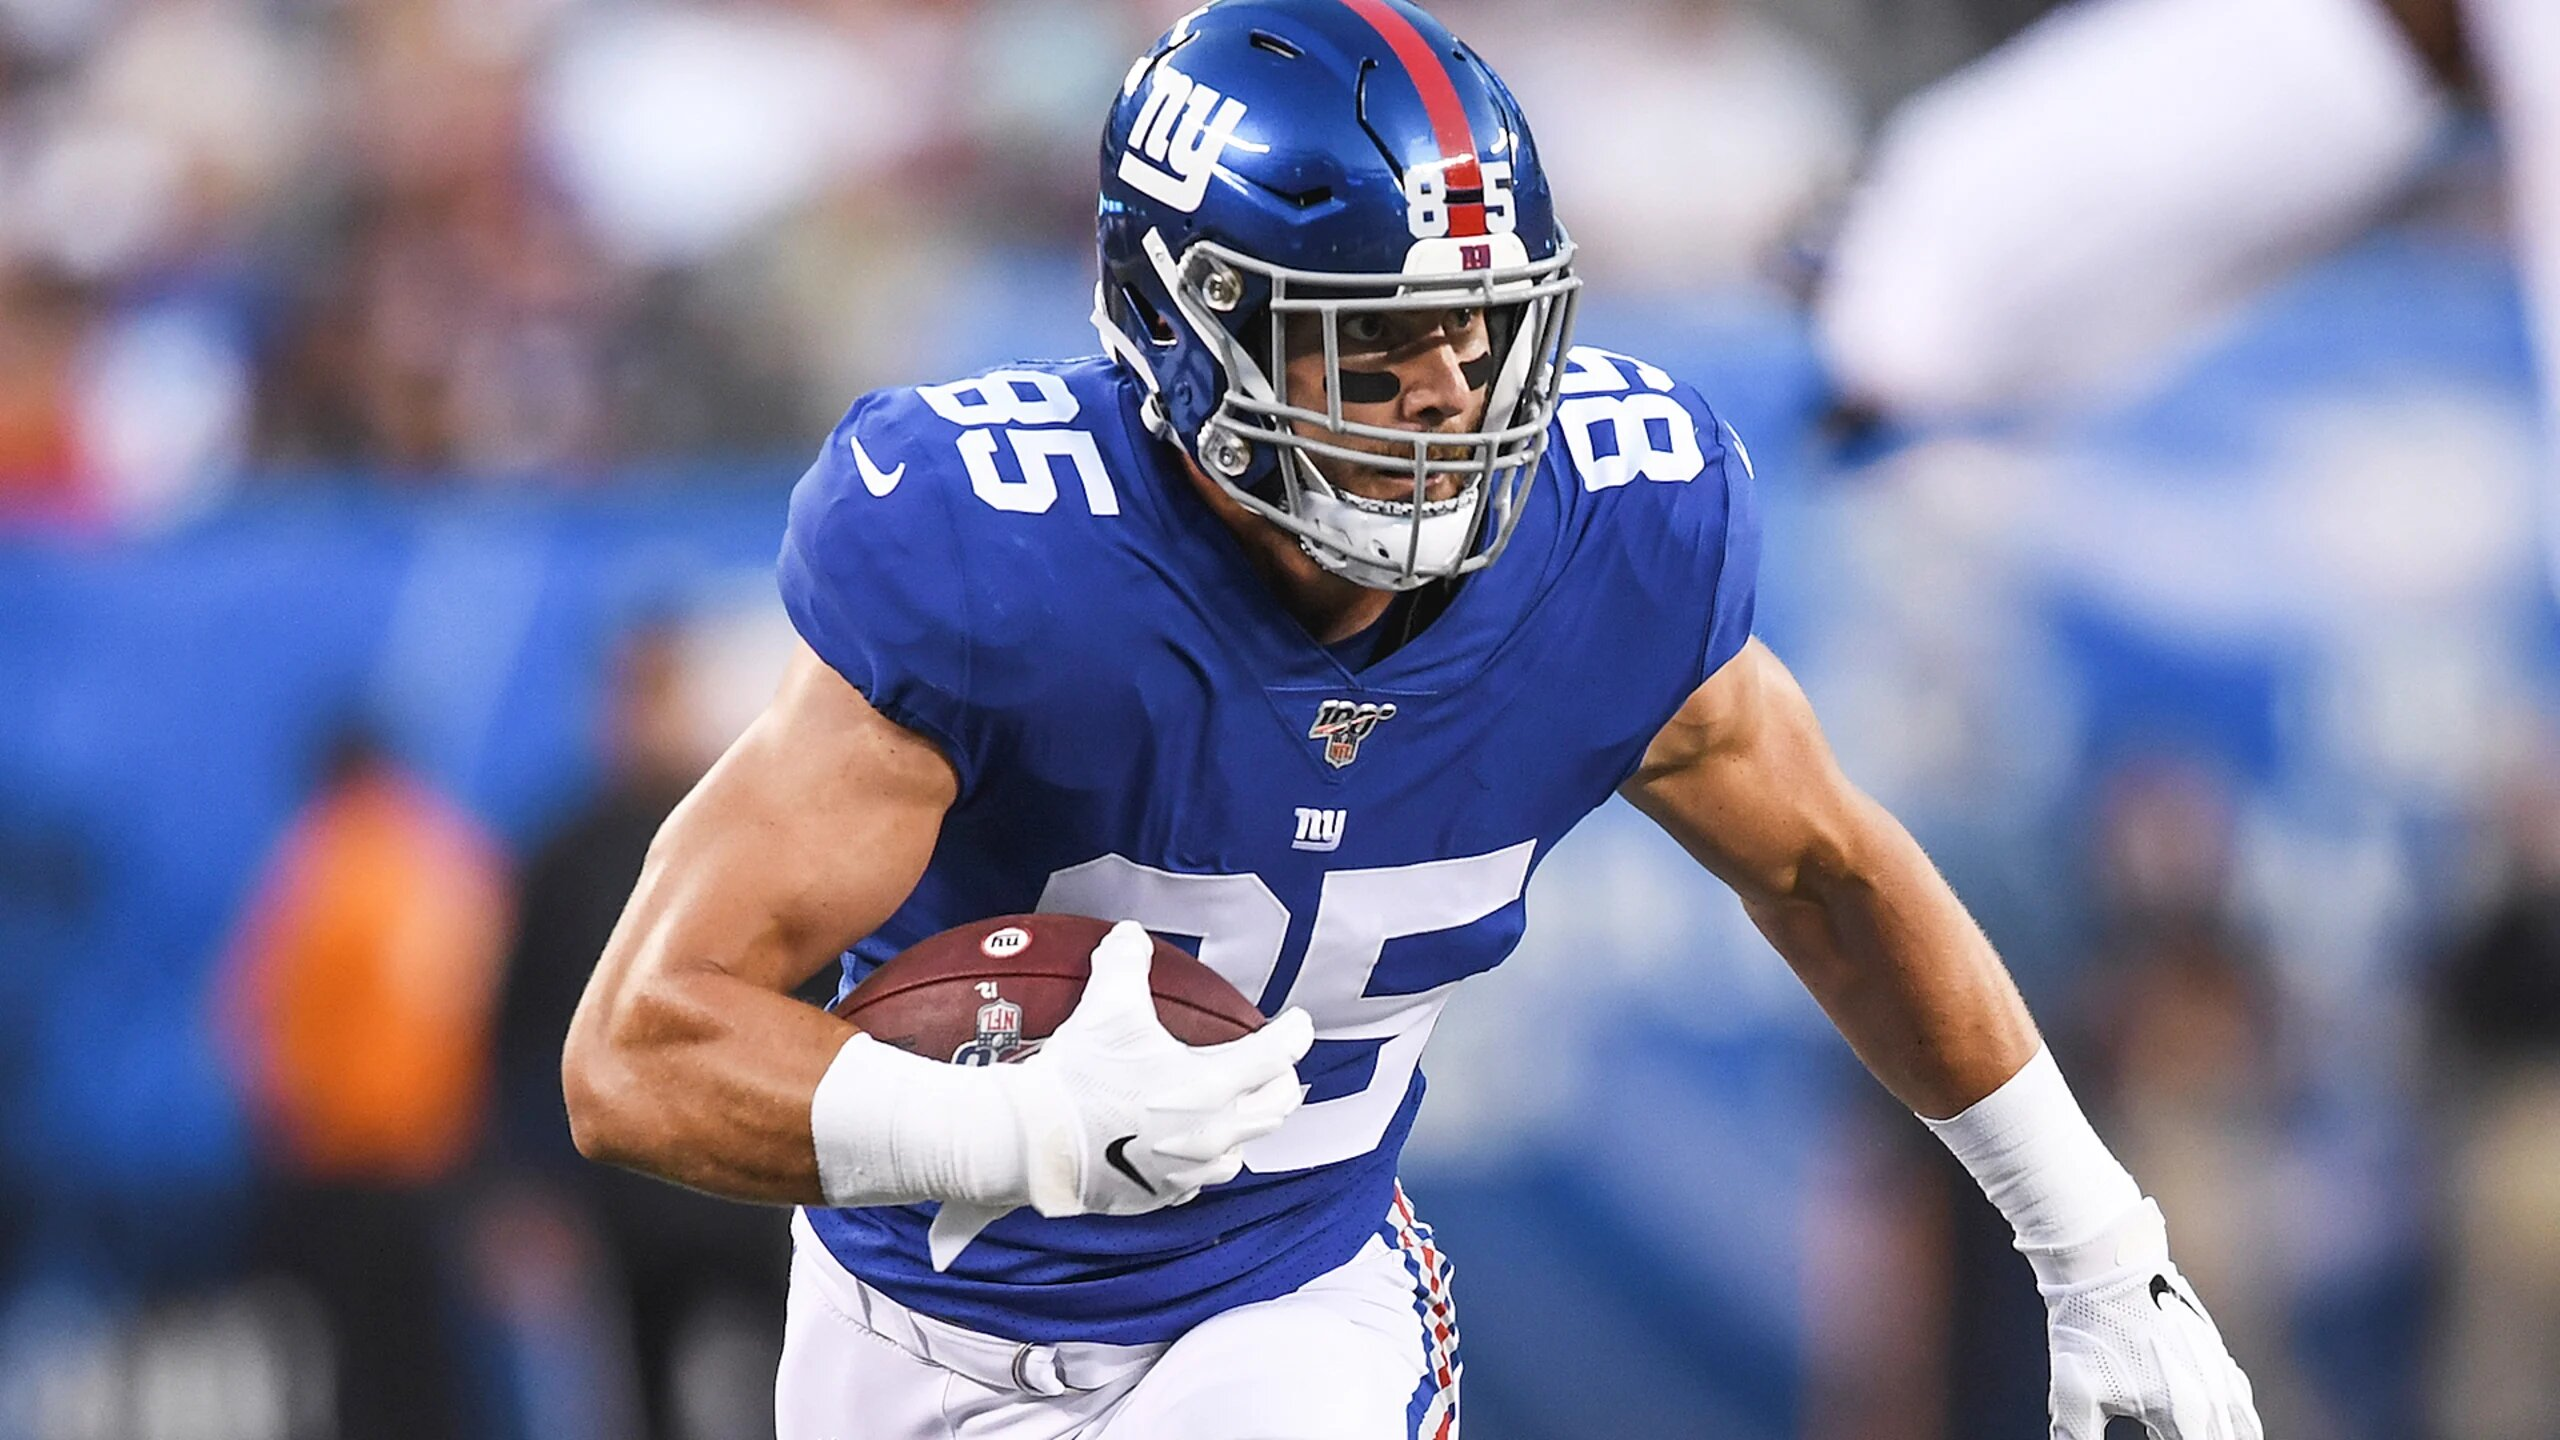 Former New York Giants tight end Rhett Ellison running with the football after a reception